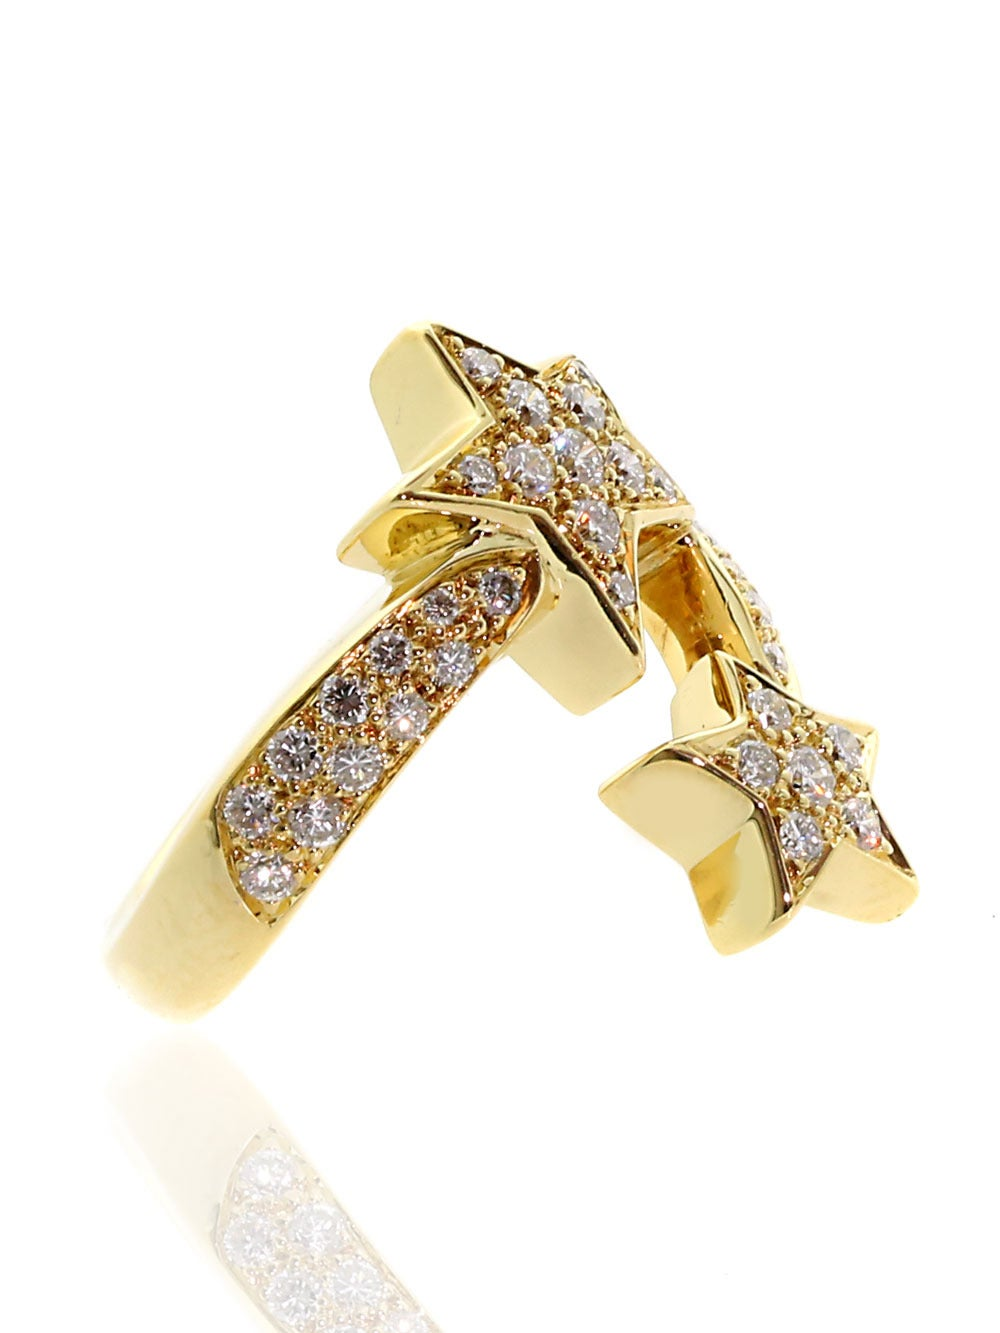 A magnificent Chanel ring from the Comete collection featuring 39 VS1 E-F Color Round Brilliant Cut Diamonds set in 18k Yellow Gold. The ring measures .90